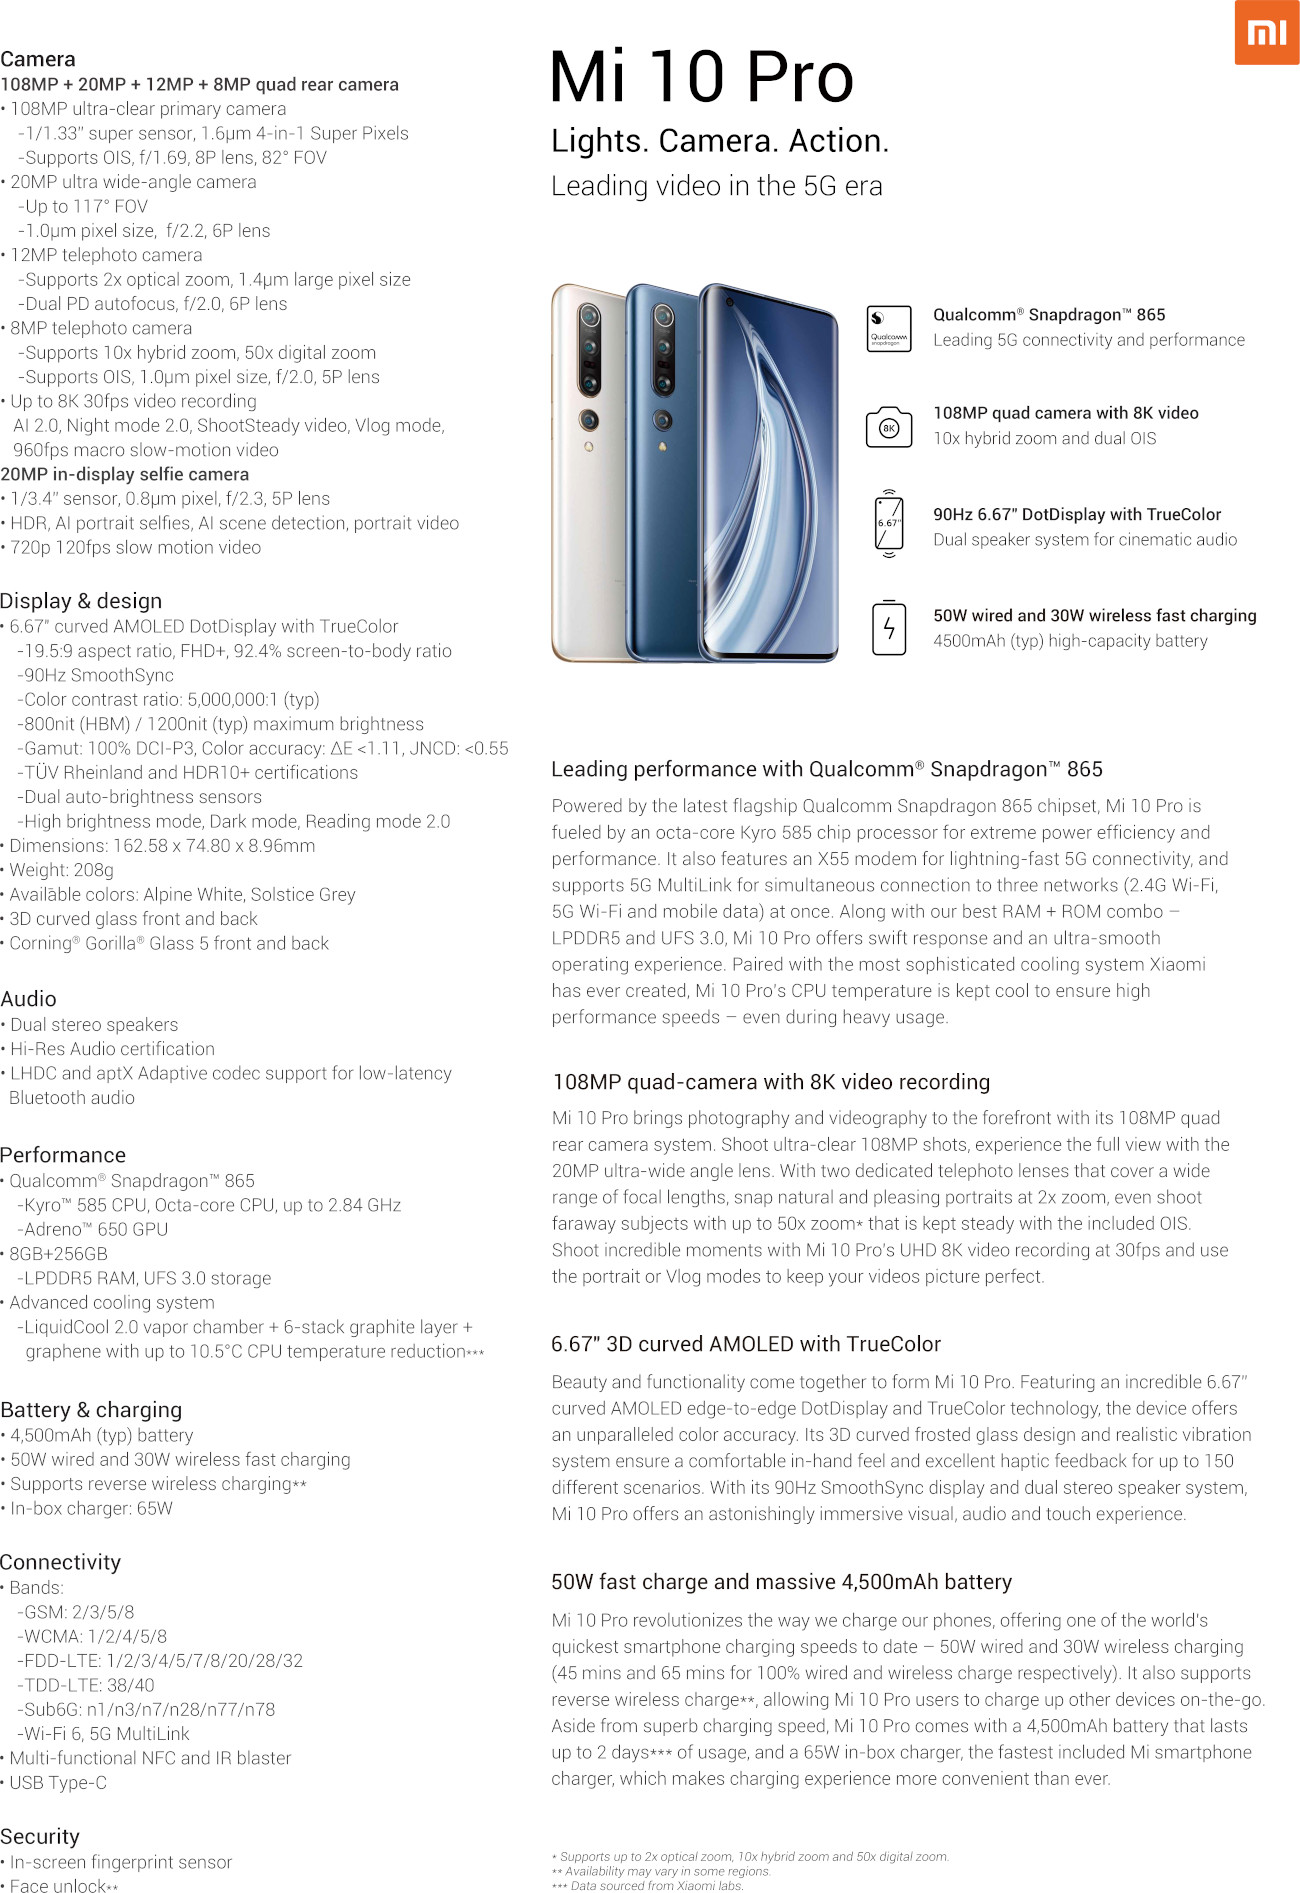 Mi 10 Pro one-pager